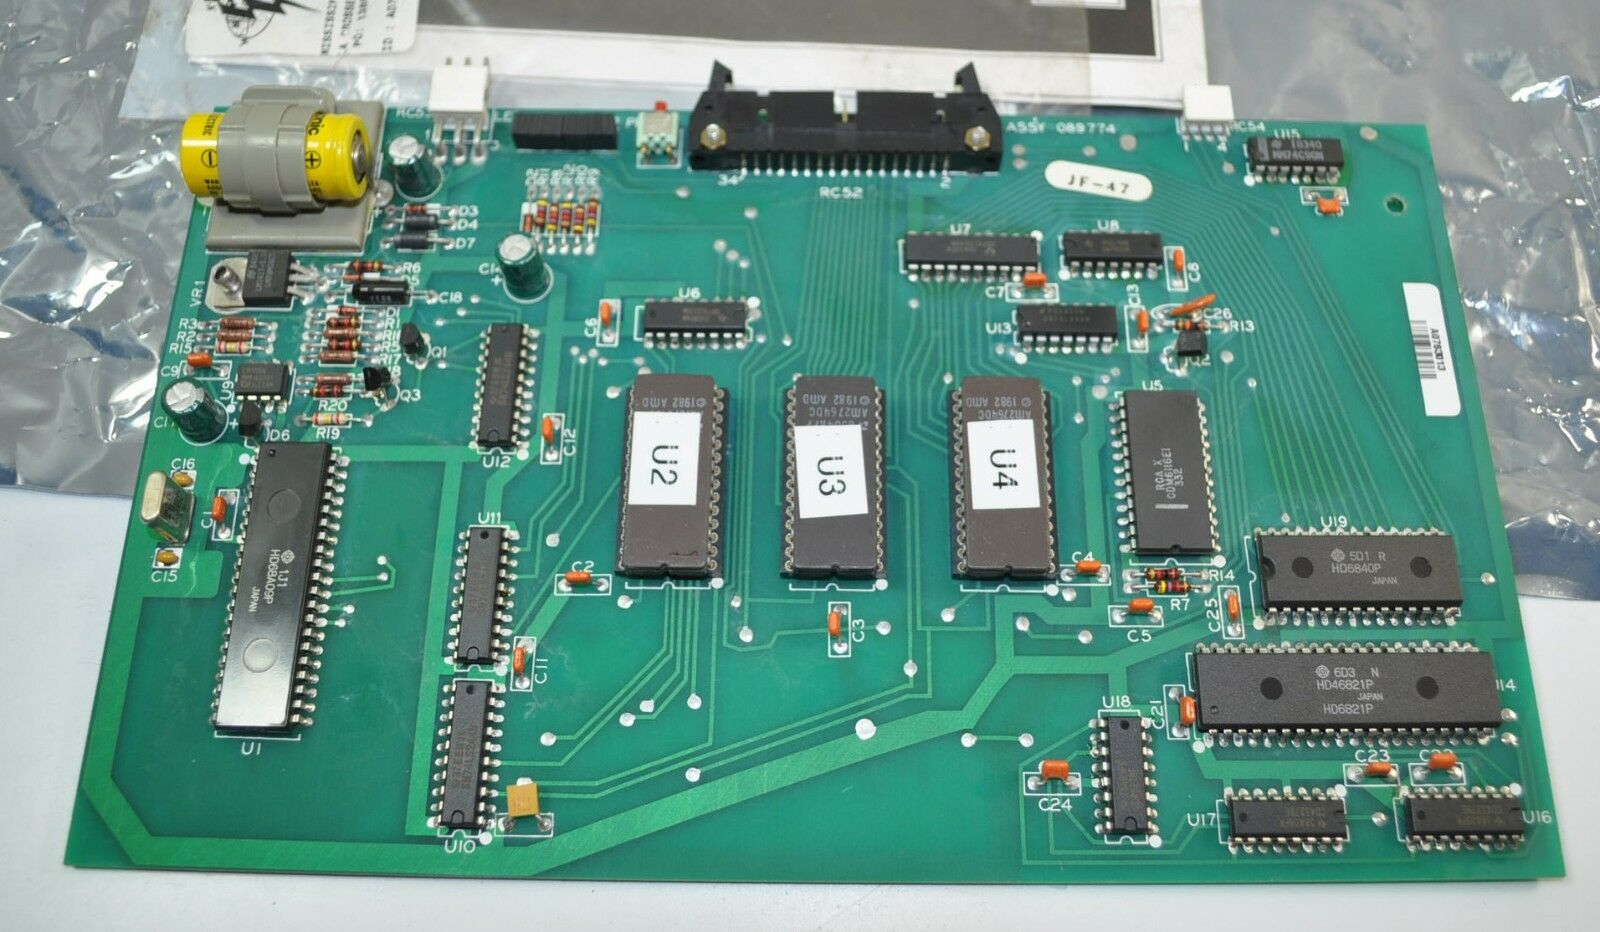 Miller Welder Pc Printed Circuit Board Card Assembly Pn 089774 Ebay Spot Controller Pcb Without Components Norton Secured Powered By Verisign